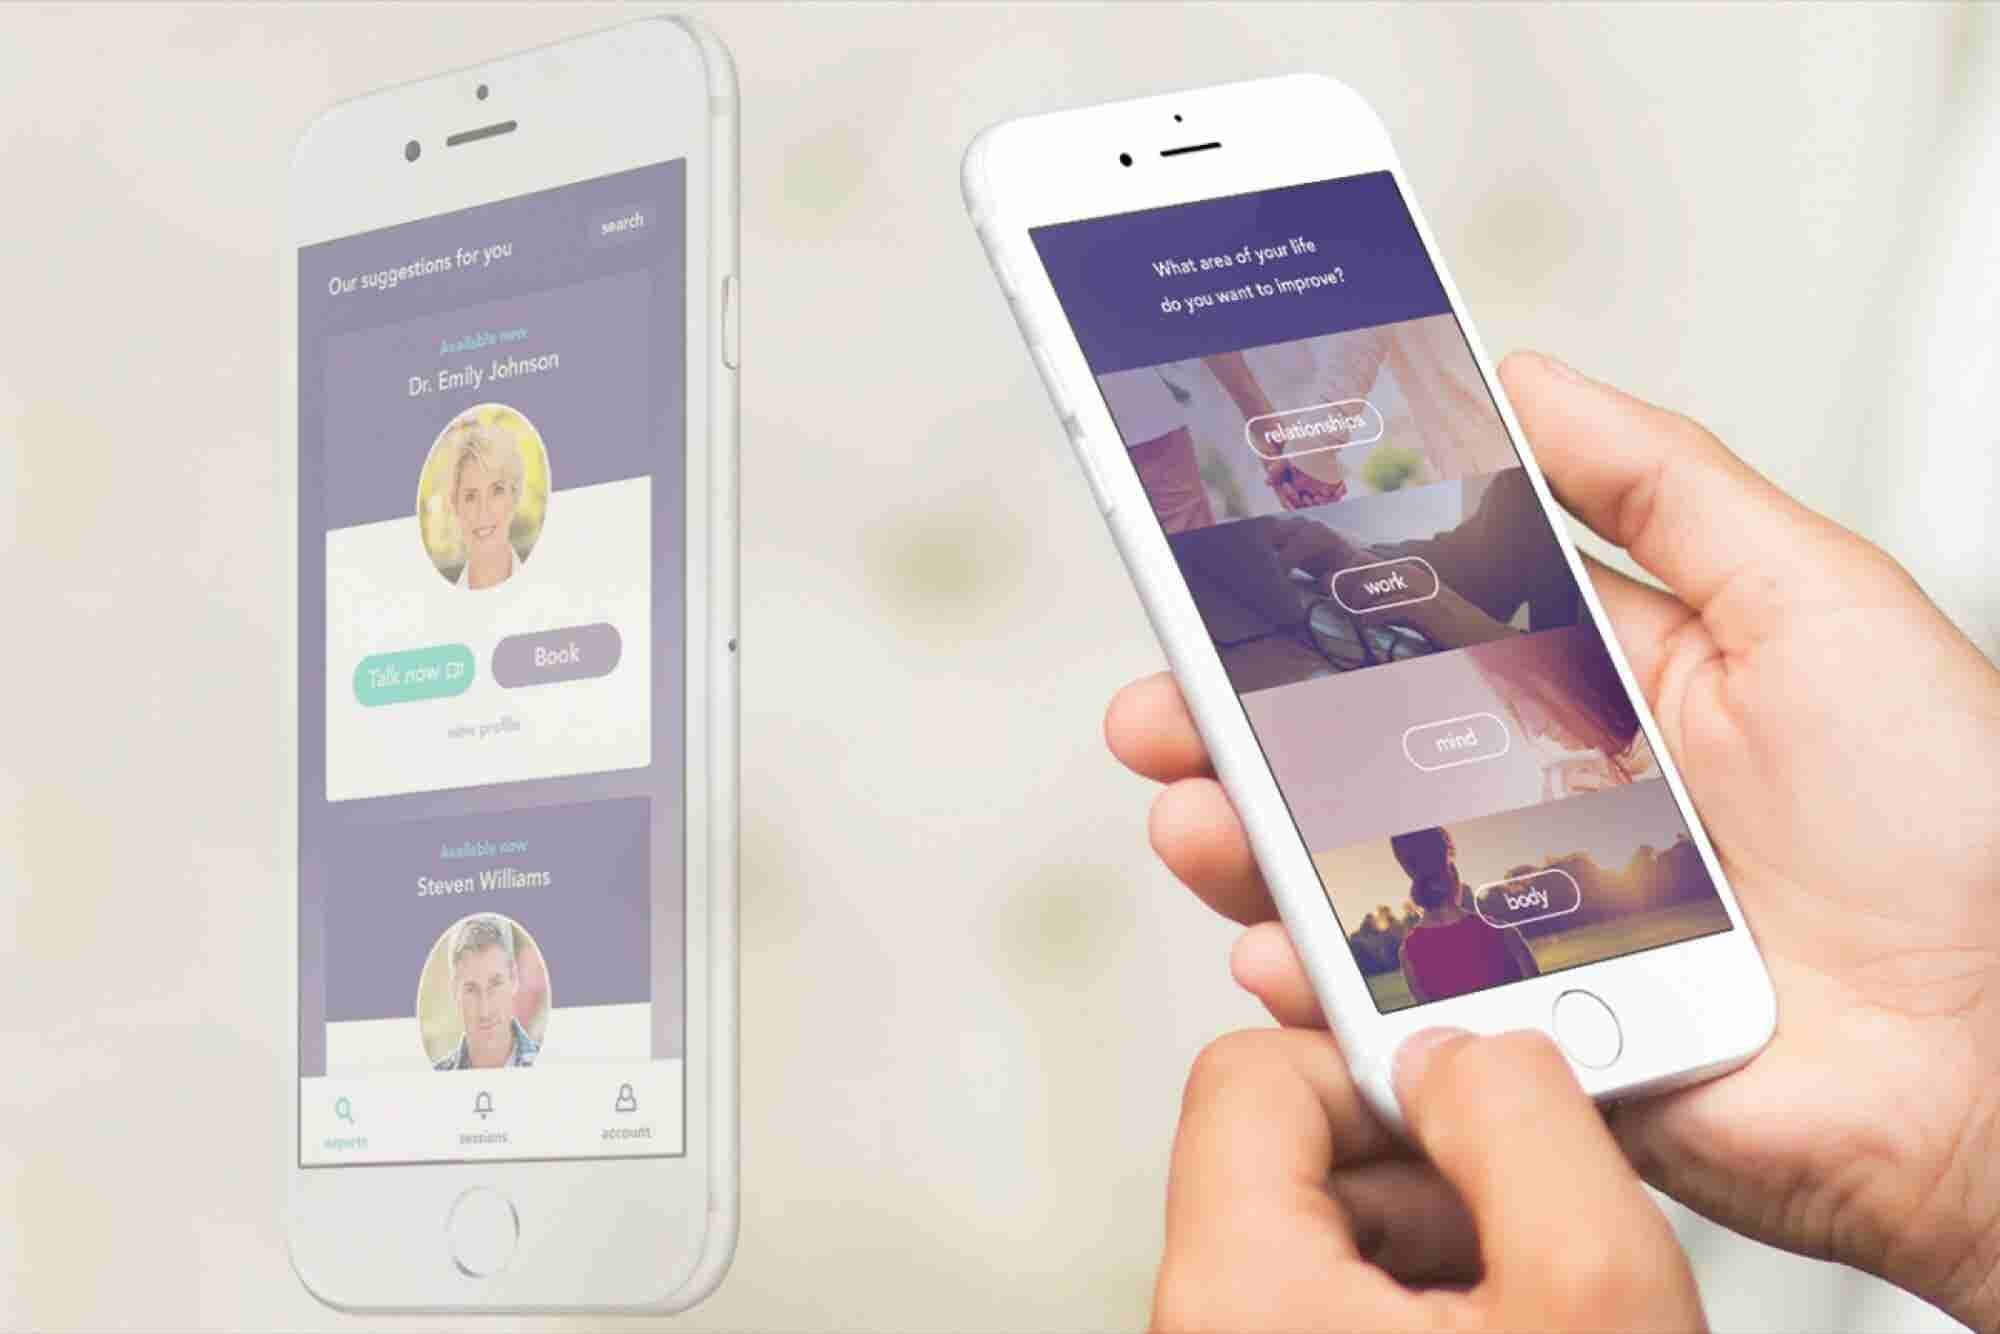 Insta-Zen: New App Connects You With a Coach or Therapist Over Live Video